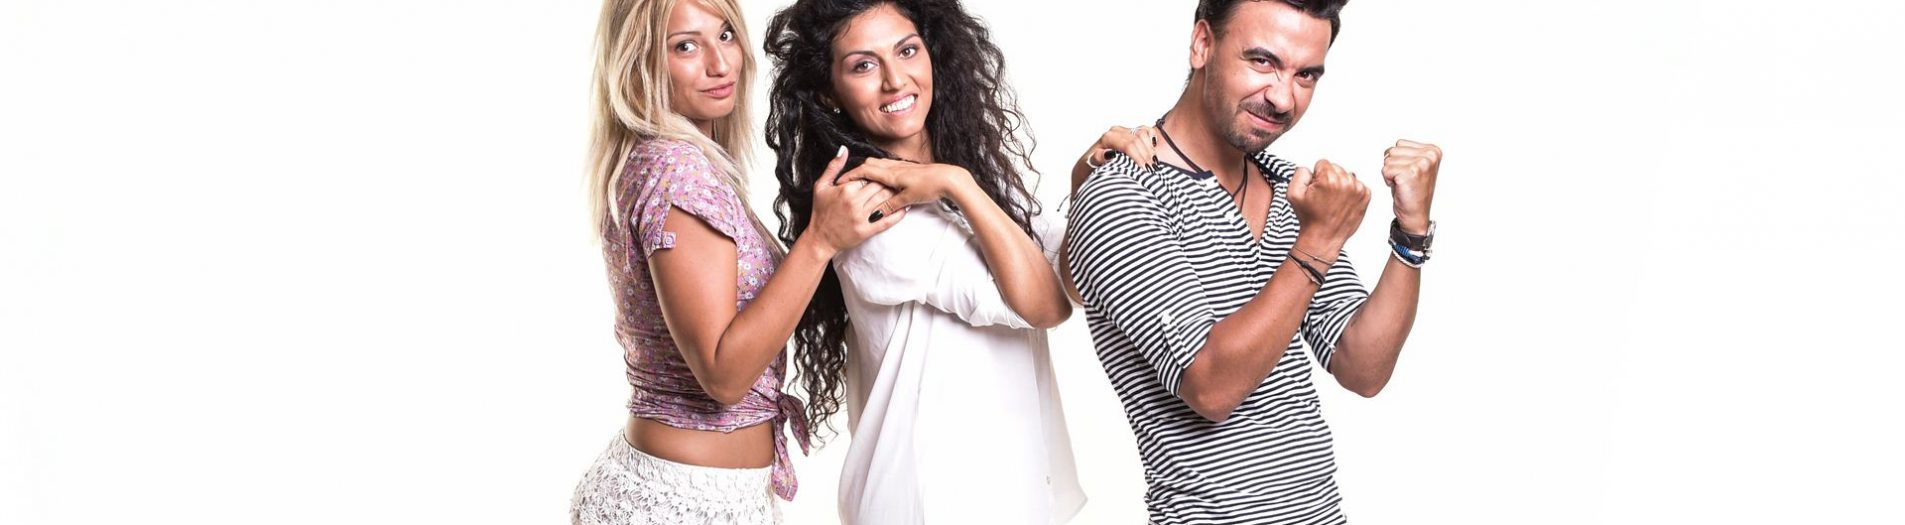 Max, Doinita & Laurette...crazy photo session for a new TV Show